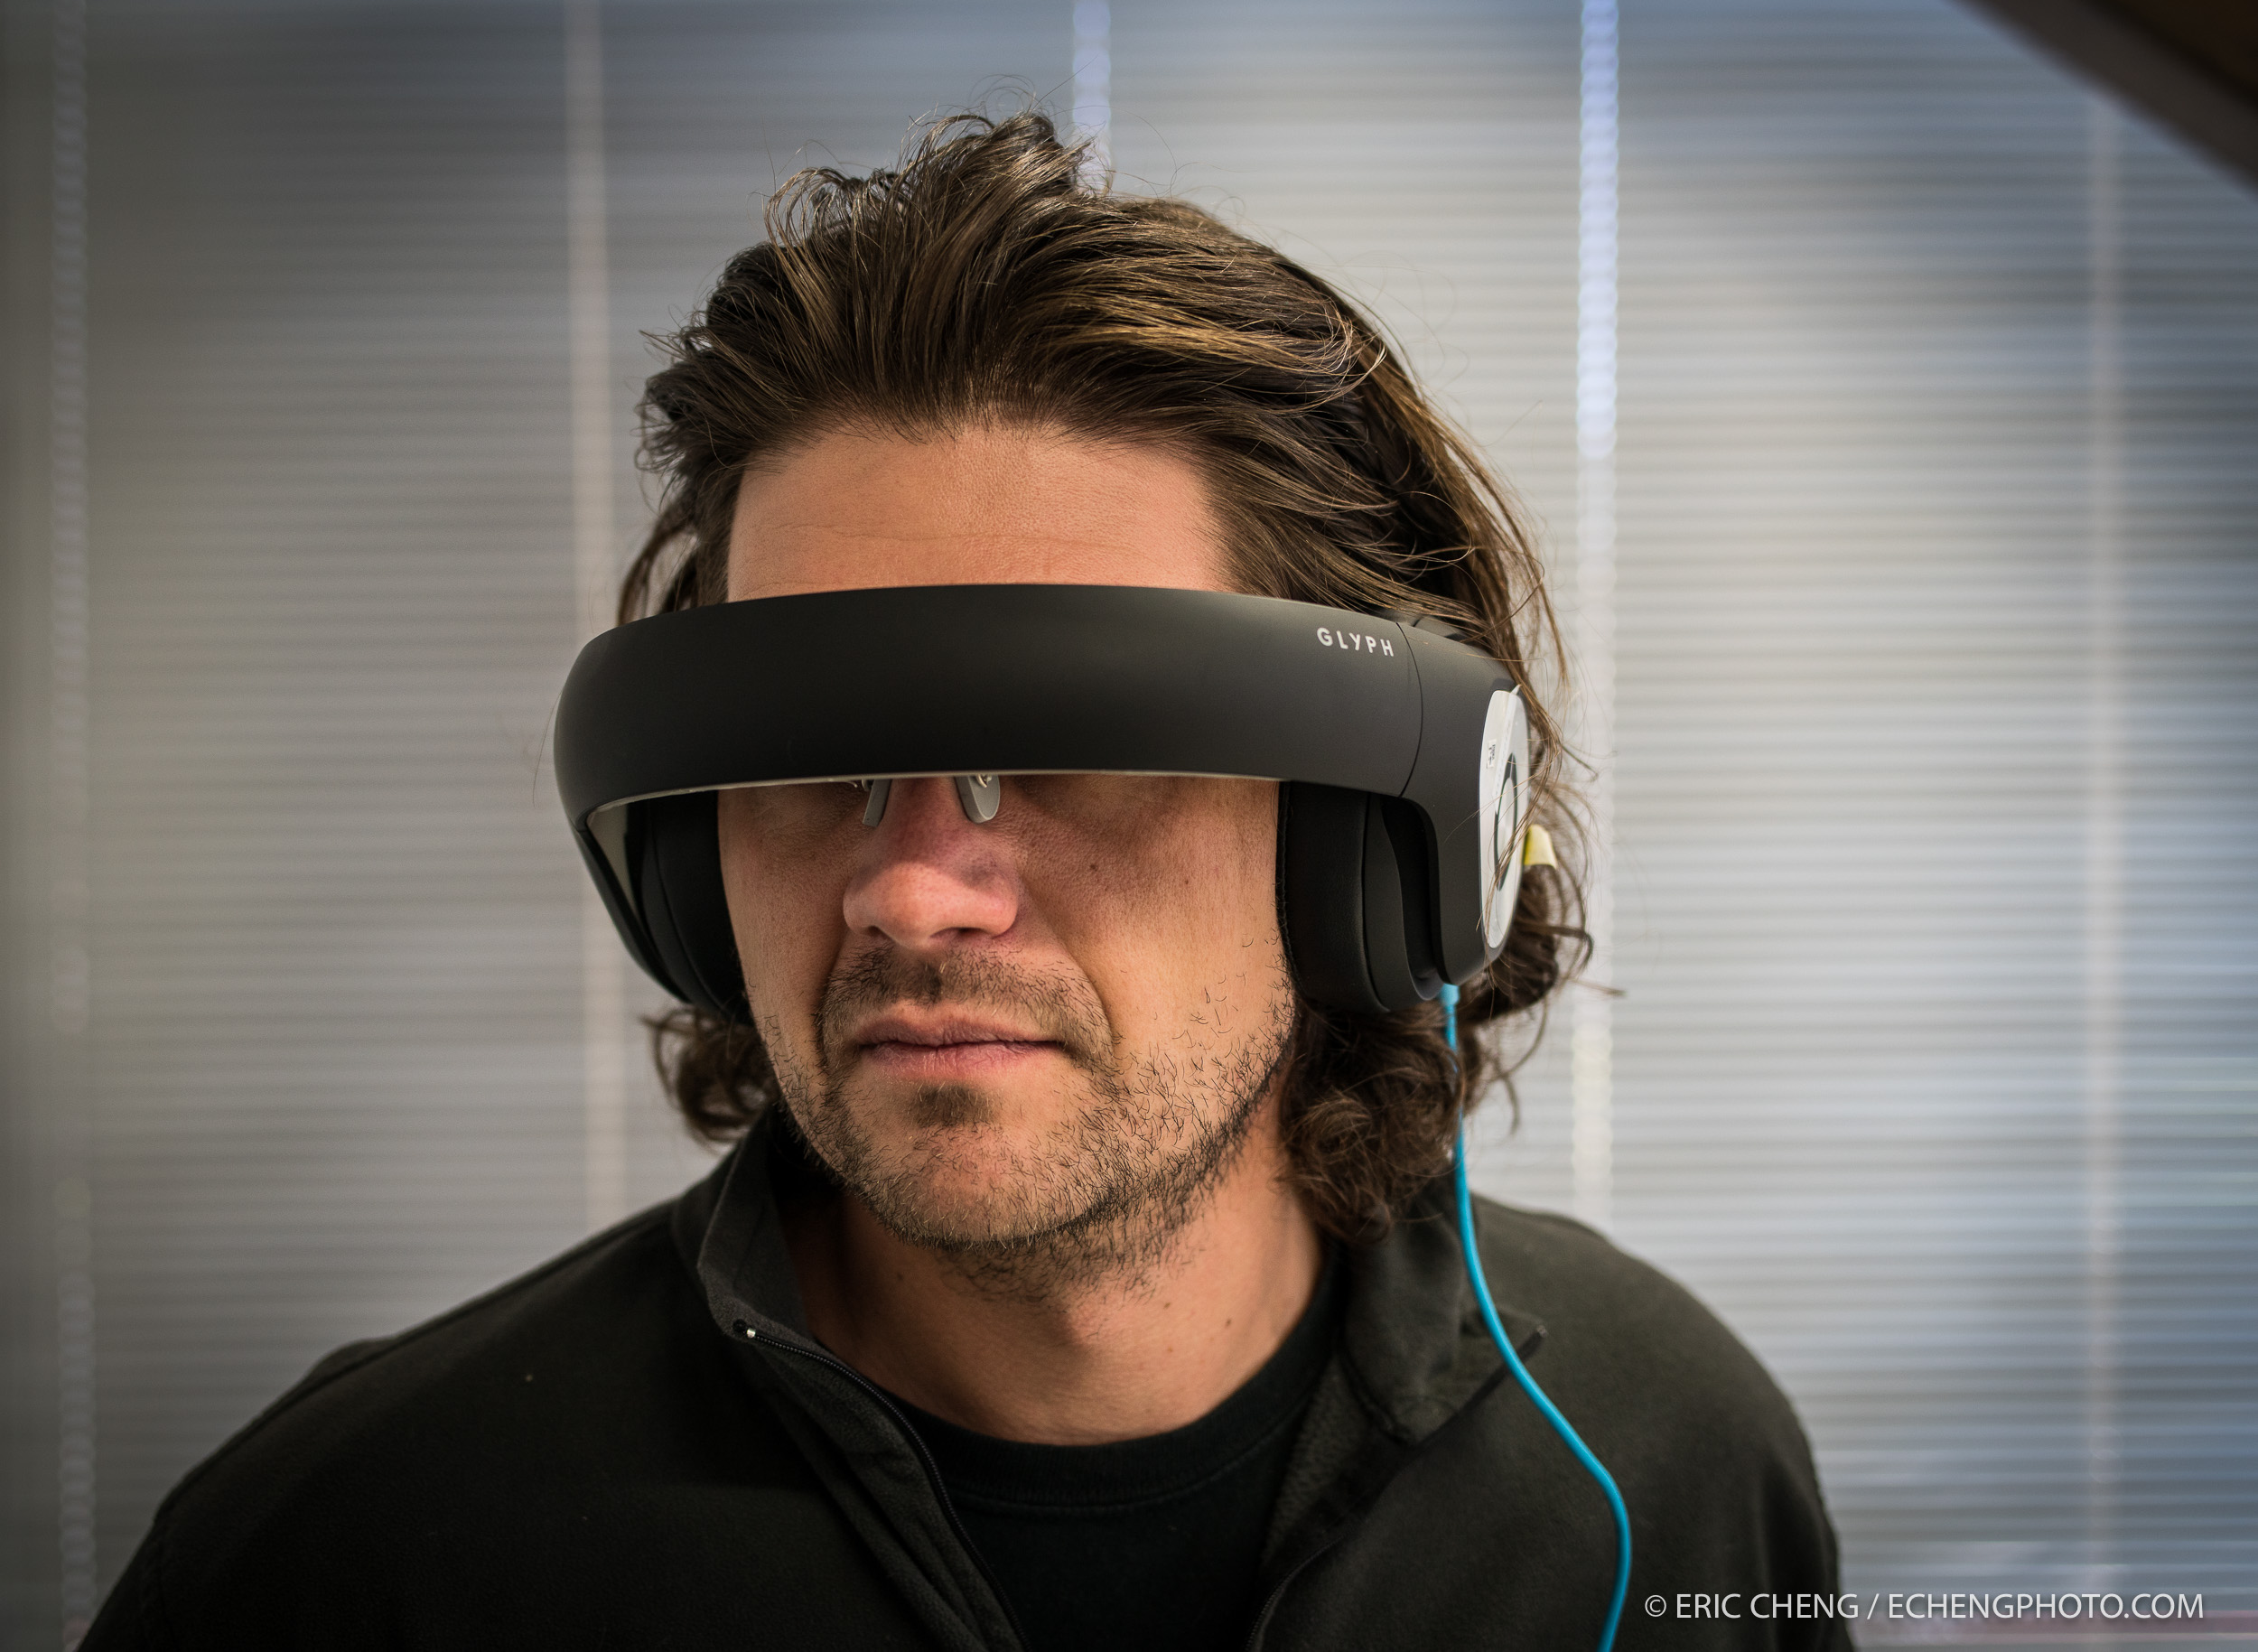 Avegant co-founder and CTO Dr. Allan Evans wearing a pre-production Glyph